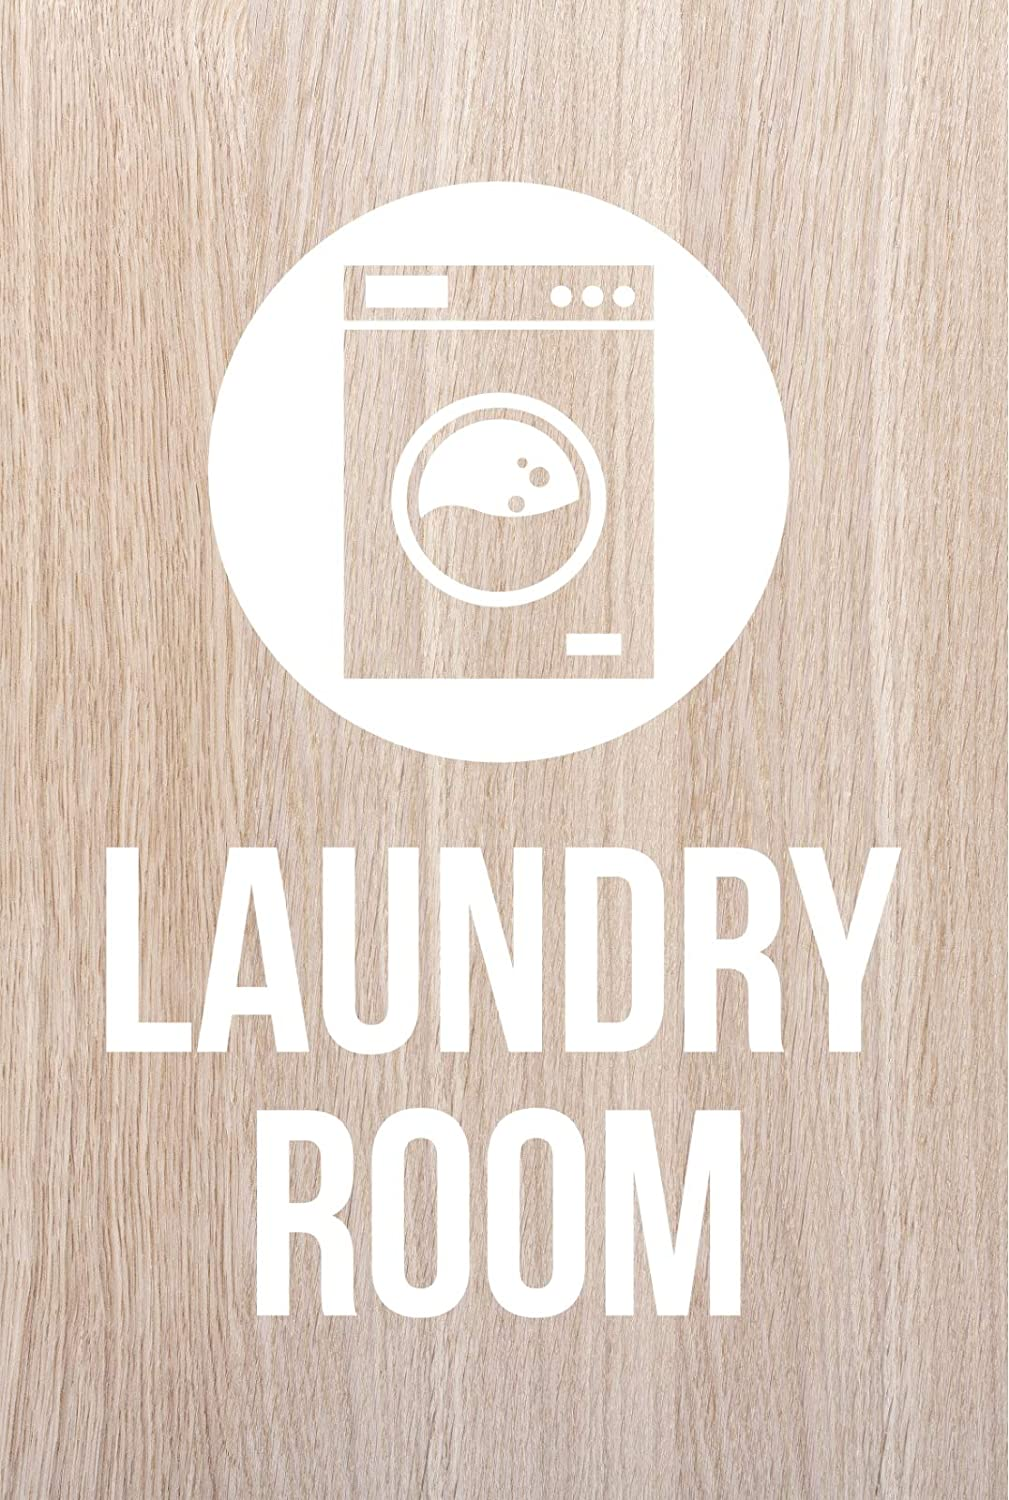 iCandy Products Inc Laundry Room Hotel Business Office Building Sign 12x18 Inches, White Oak, Plastic